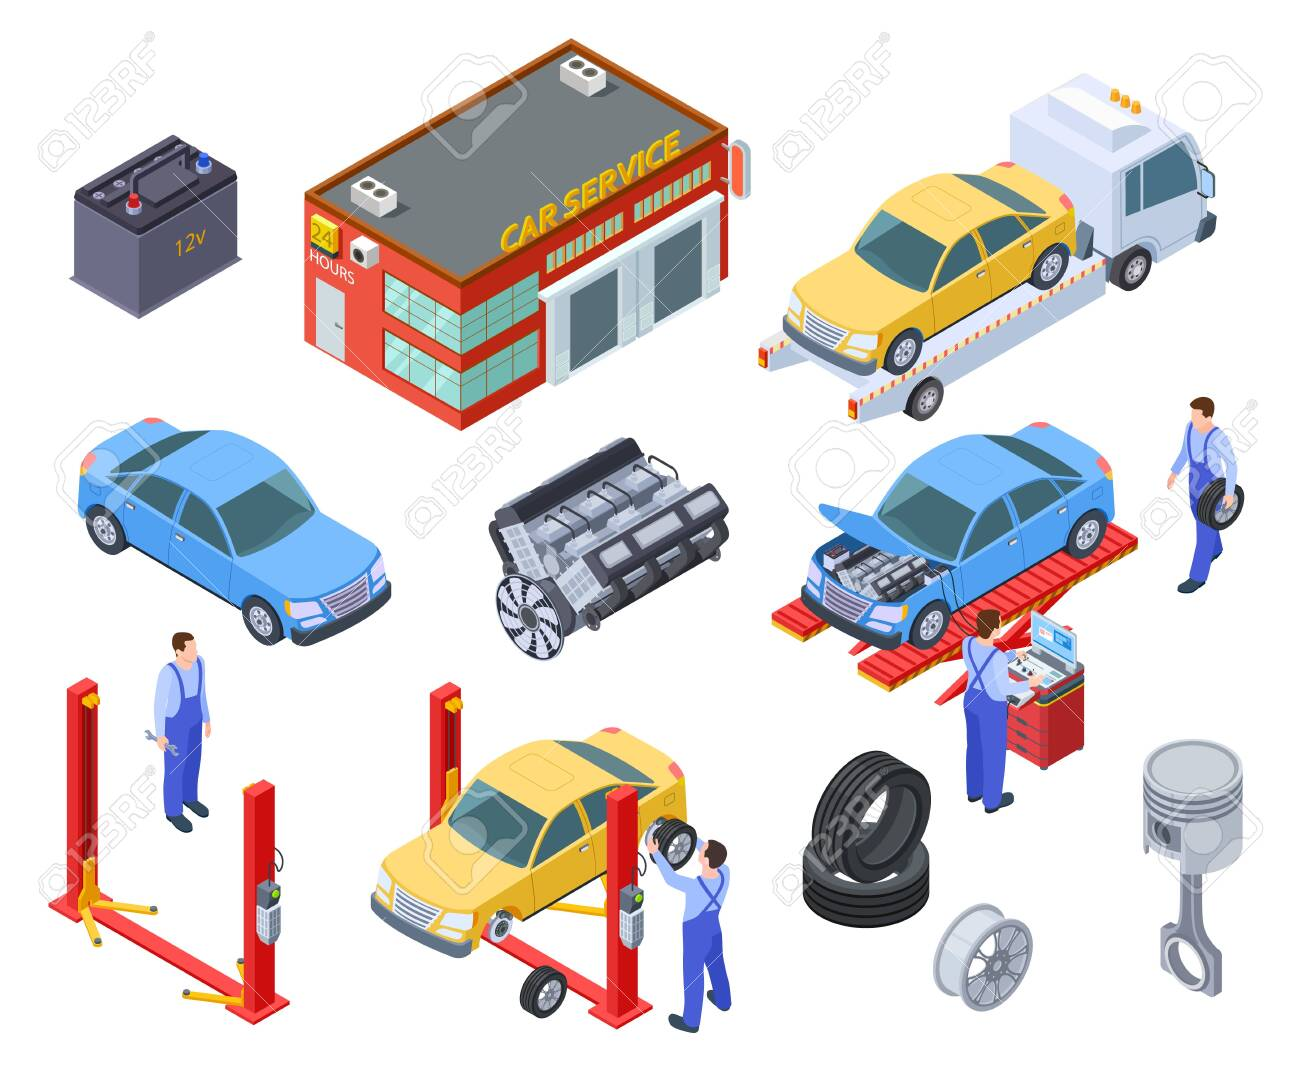 Car service isometric. People repair cars with auto industrial equipment. Technicians replace vehicle part, wheels. Workshop 3d vector. Illustration of repair car industry, automobile service - 128173645